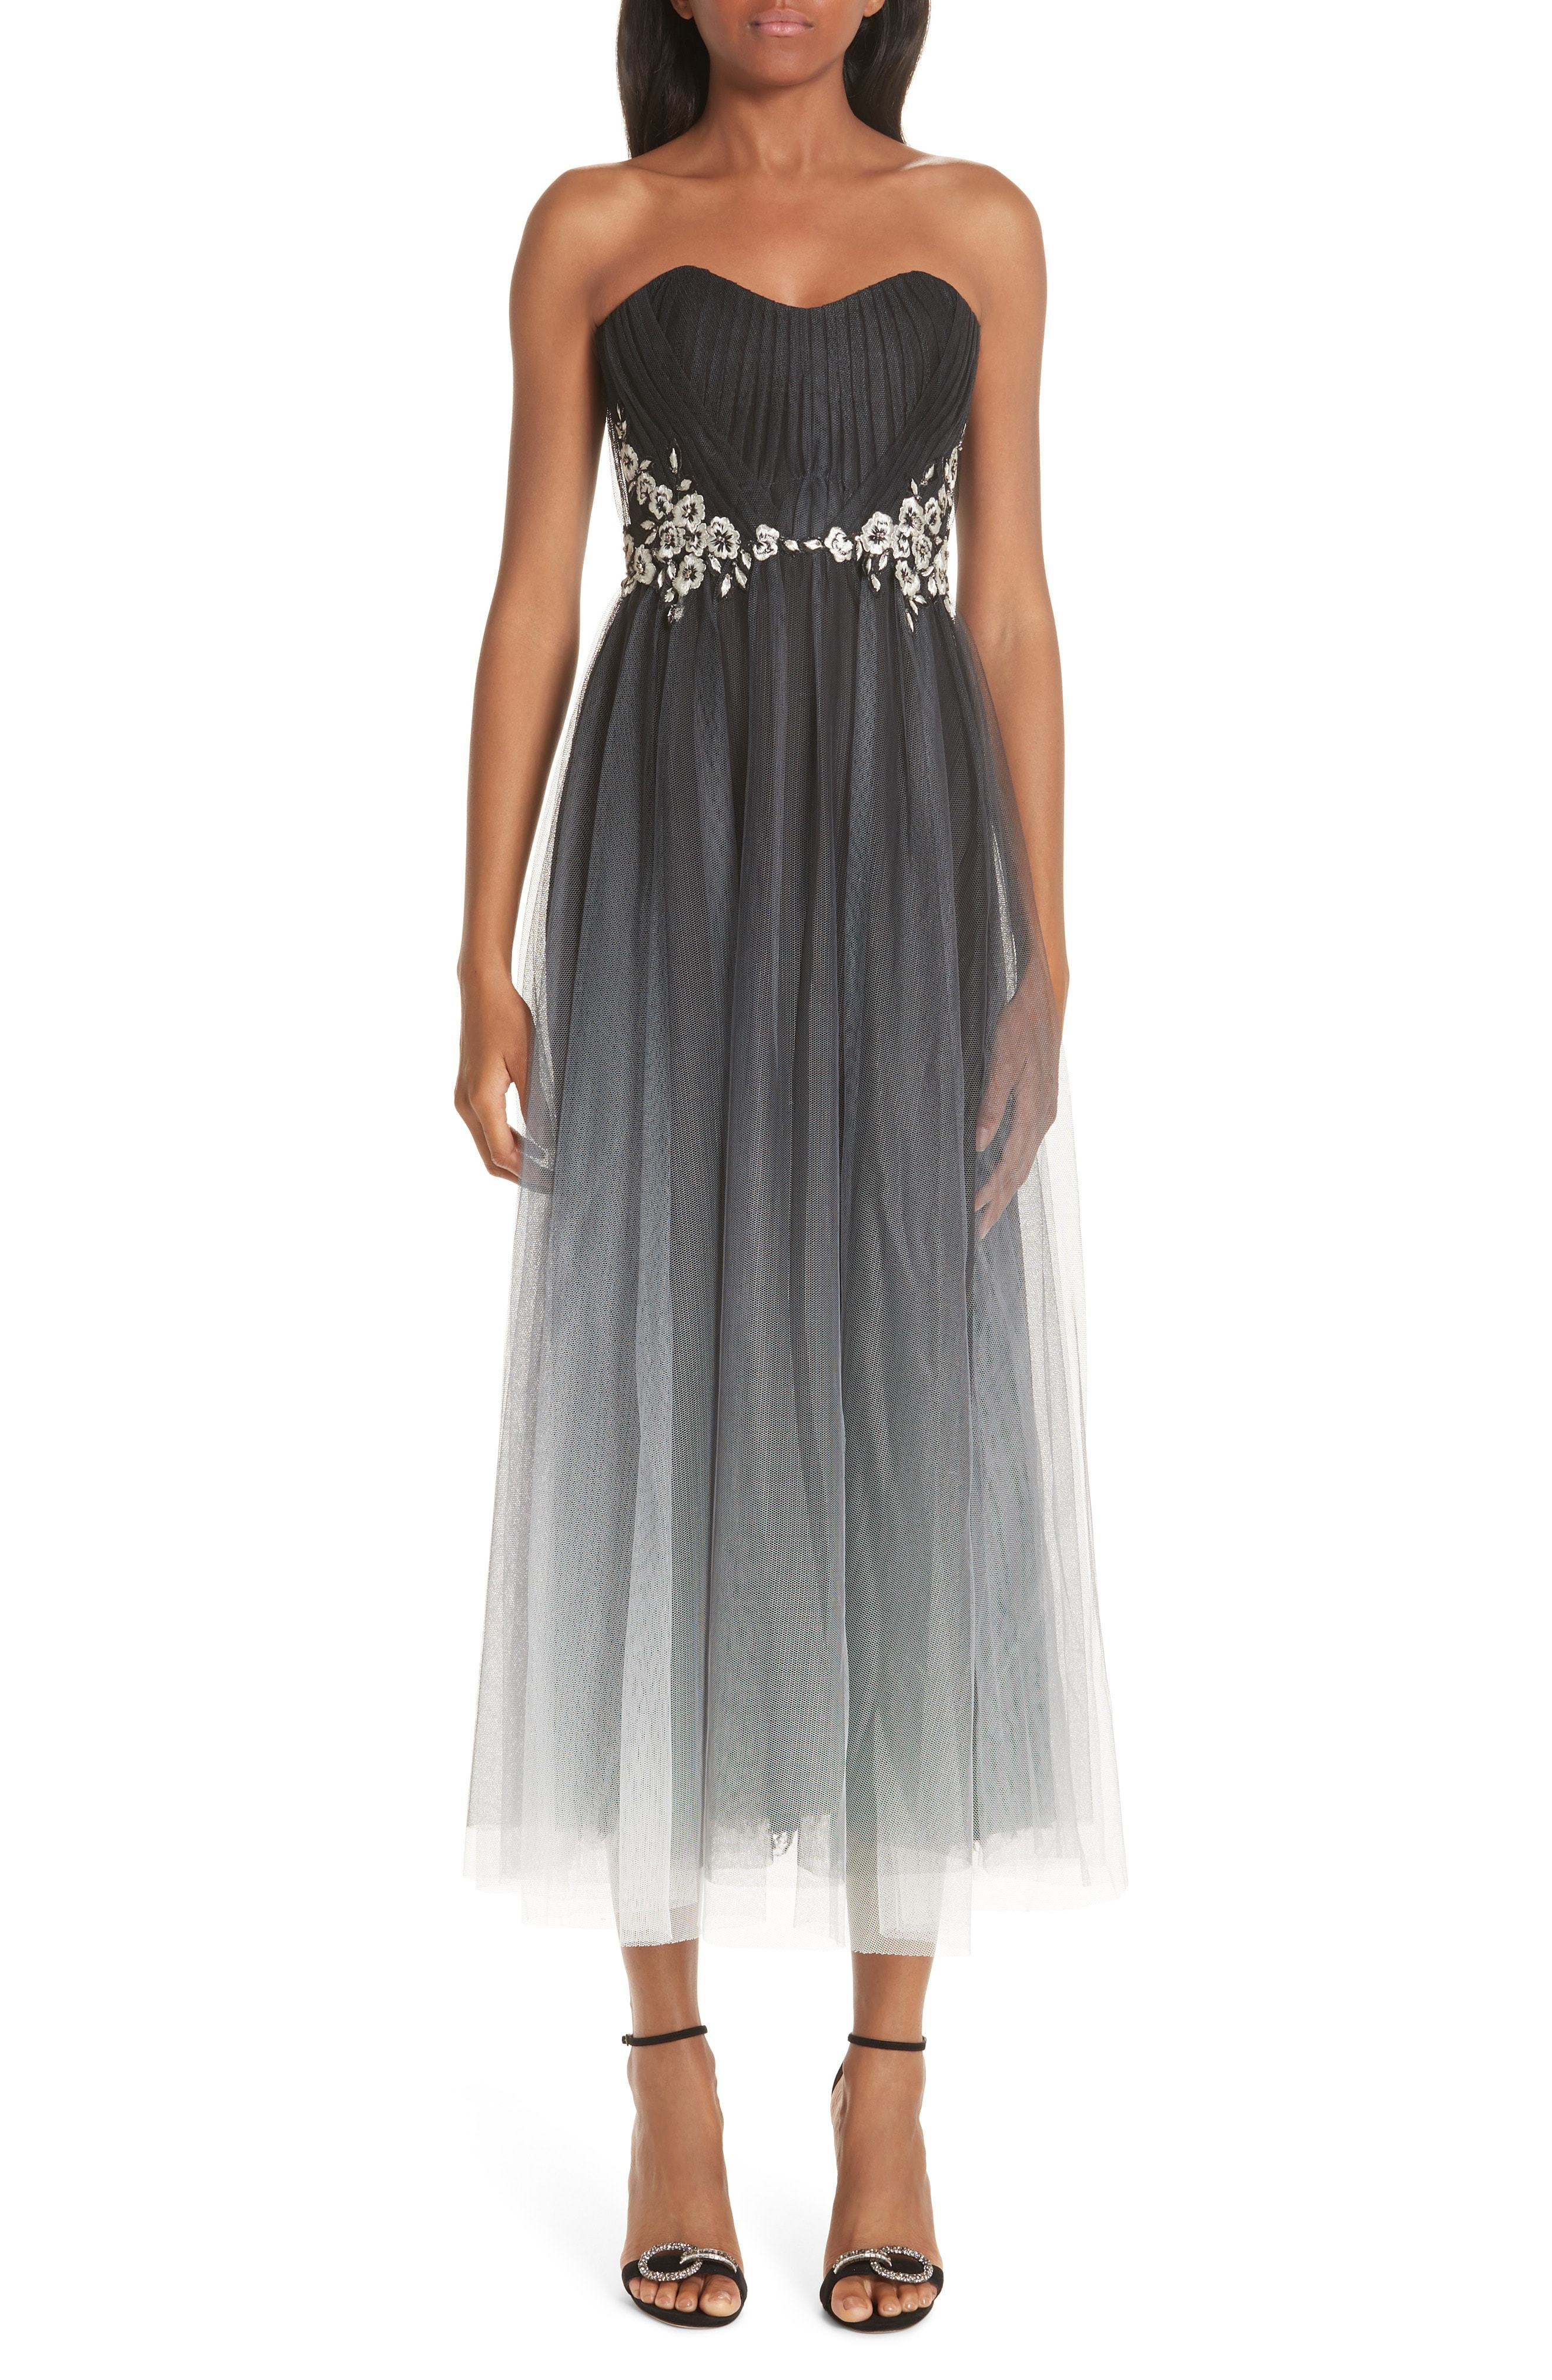 c17be085 ... Embellished Chiffon Evening Dresses Marchesa Notte Strapless Ombre Tulle  Tea Length Dress